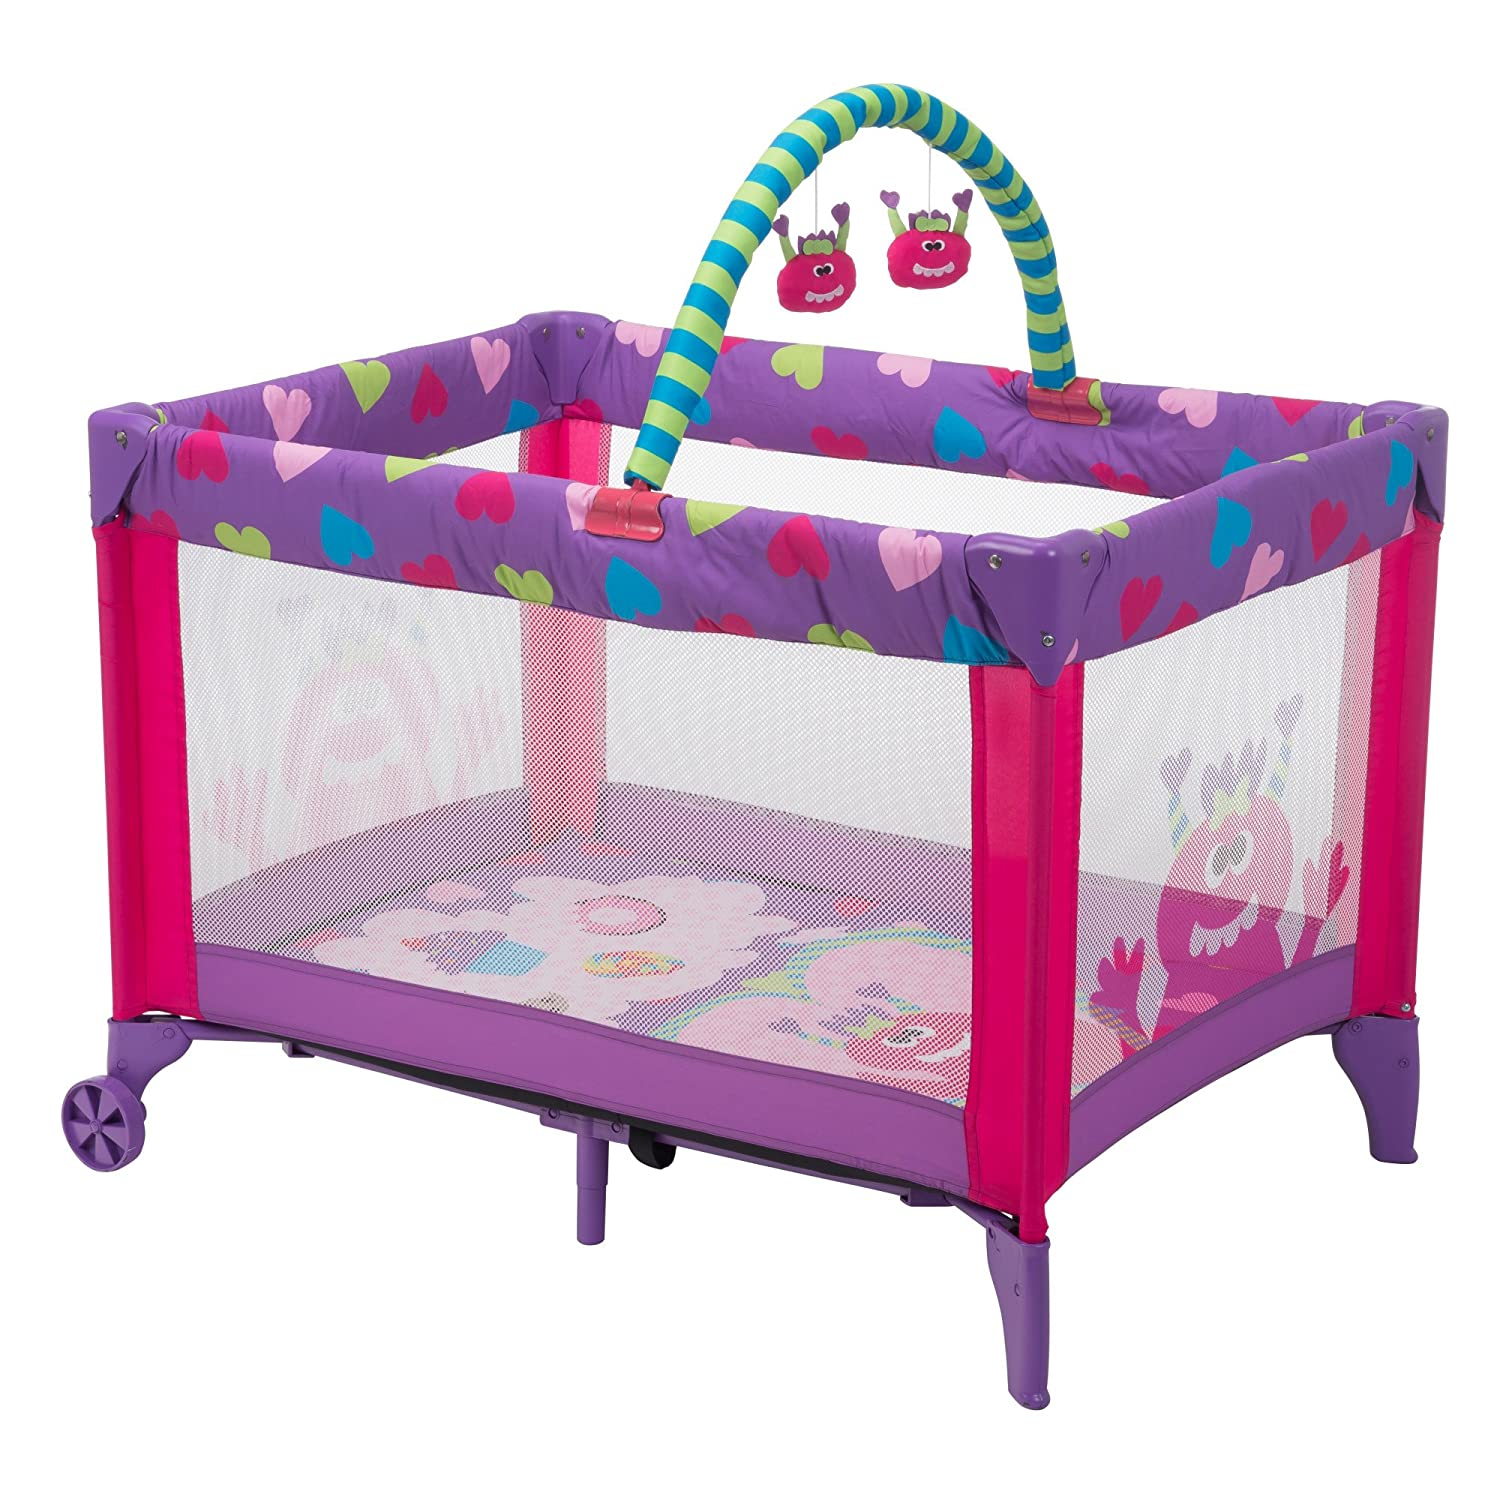 Cosco Funsport Deluxe Play Yard, Monster Shelley by Cosco   B017VNO45U